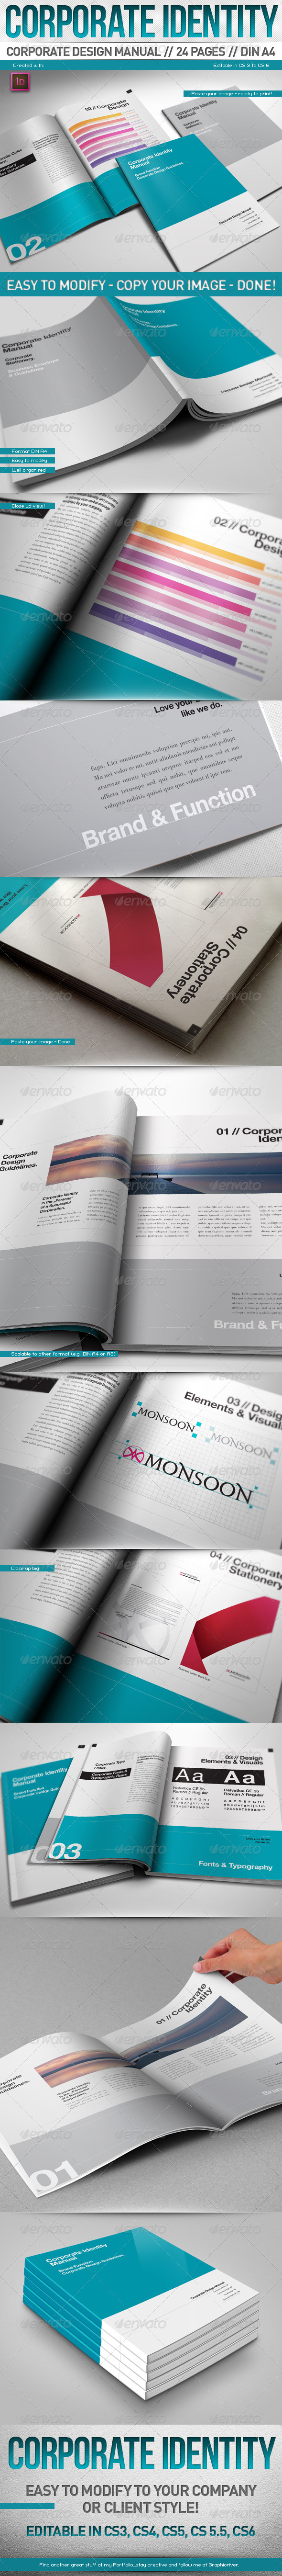 GraphicRiver Corporate Design Manual Guide DIN A4 24 Pages 3310066